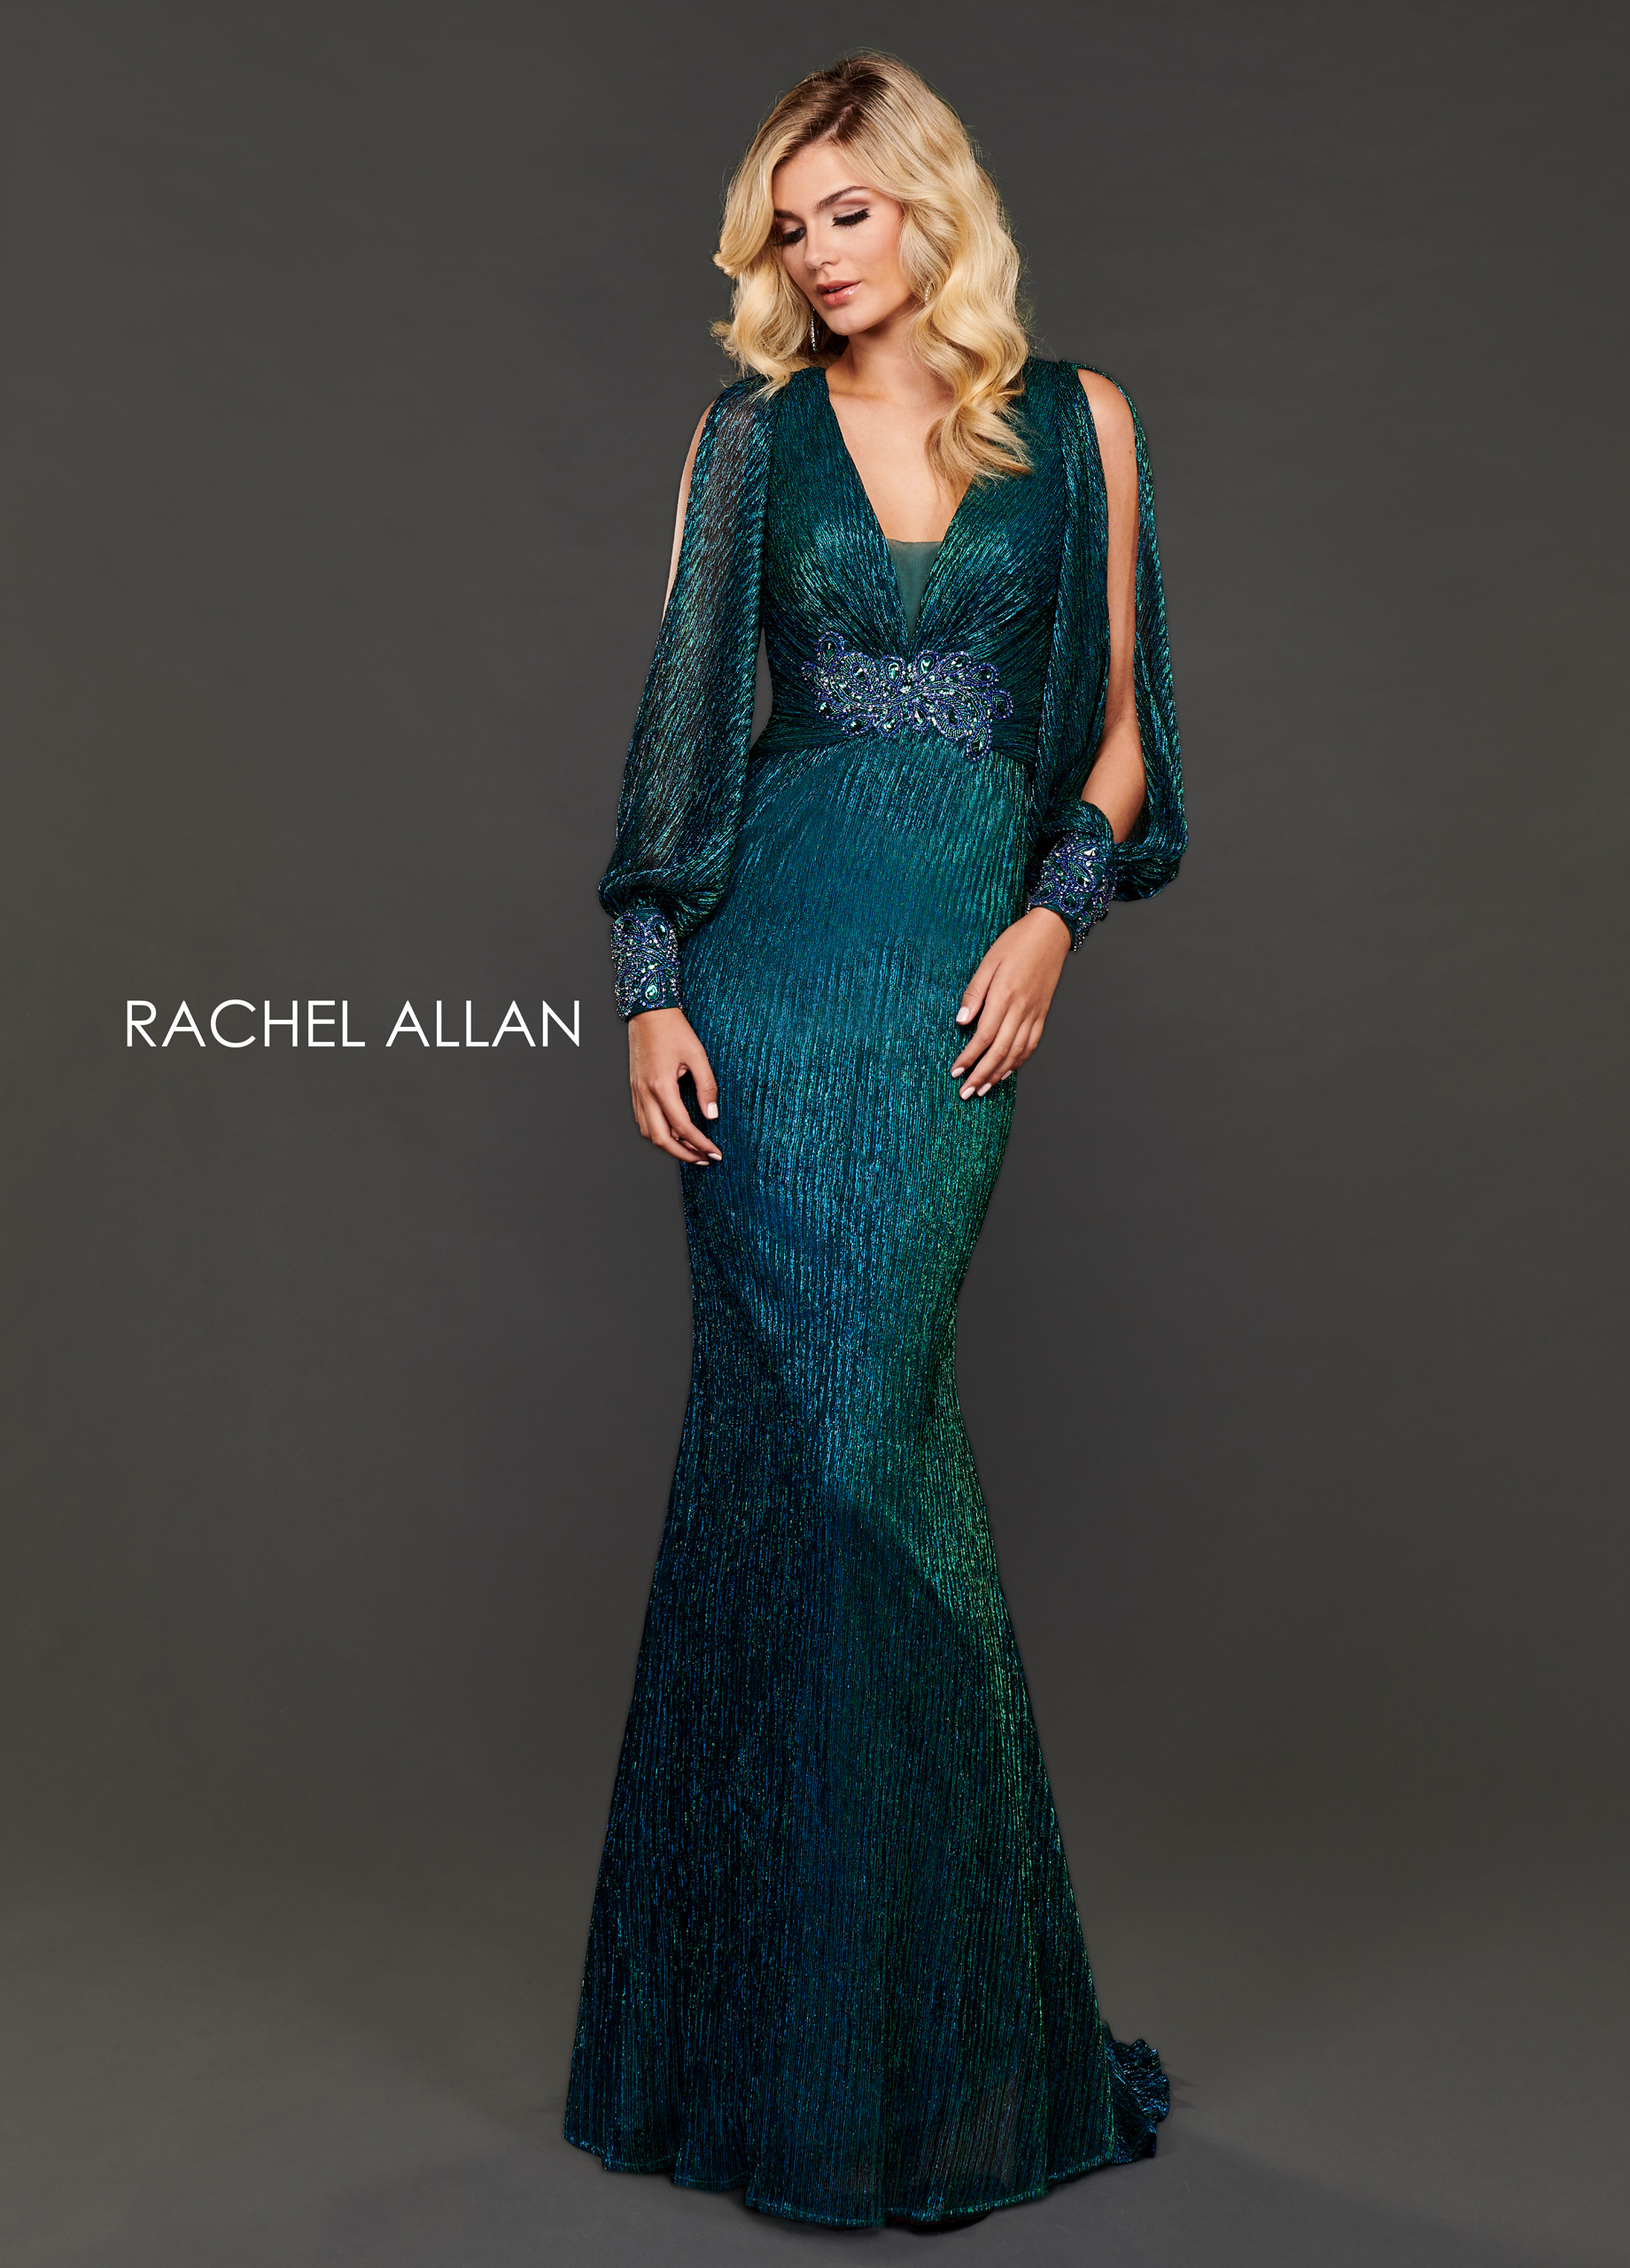 V-Neck Fitted Long Couture Dresses in Green Color